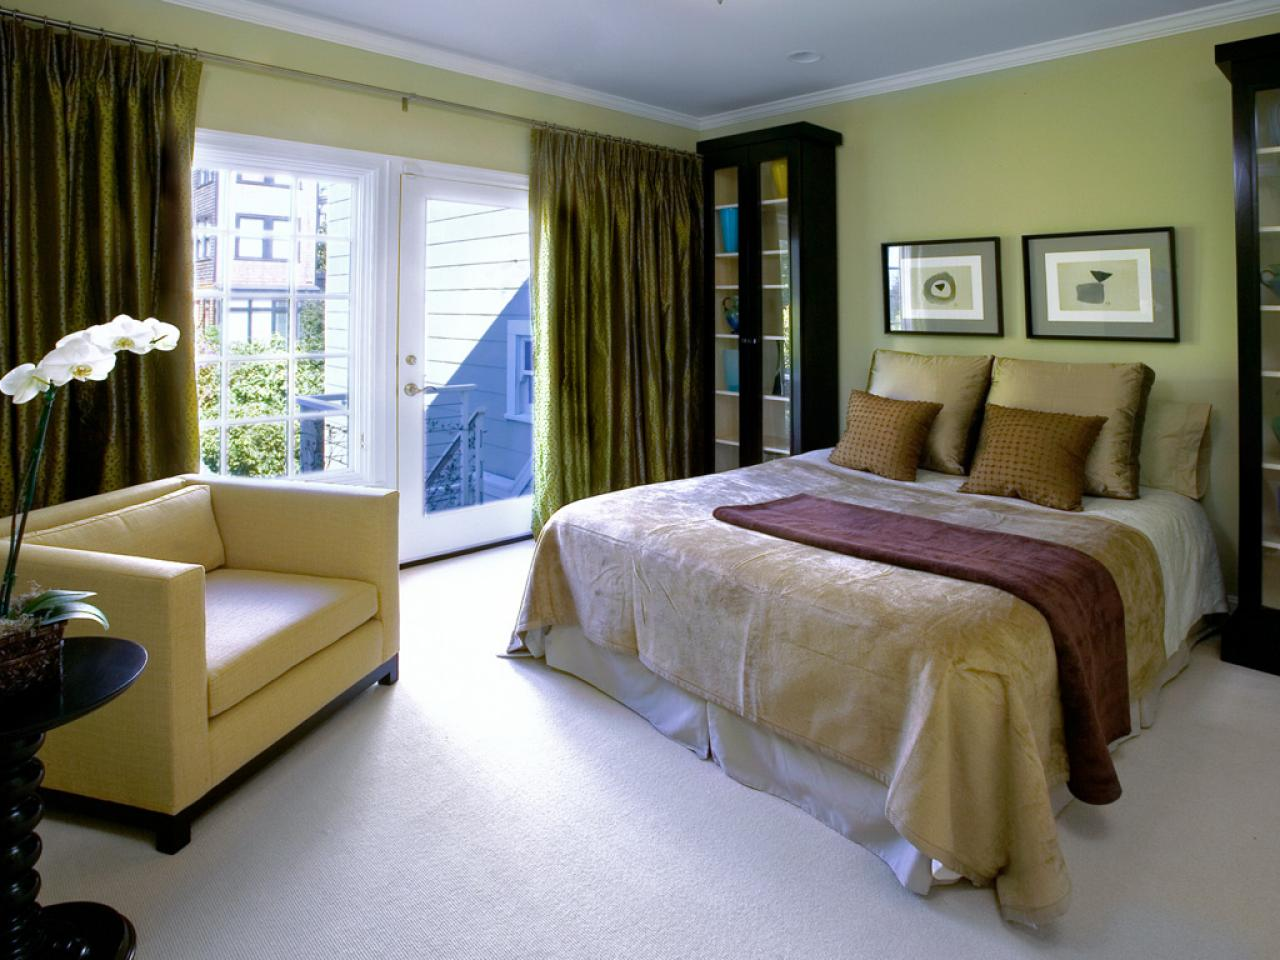 Bedroom Colors For Men great colors to paint a bedroom: pictures, options & ideas | hgtv